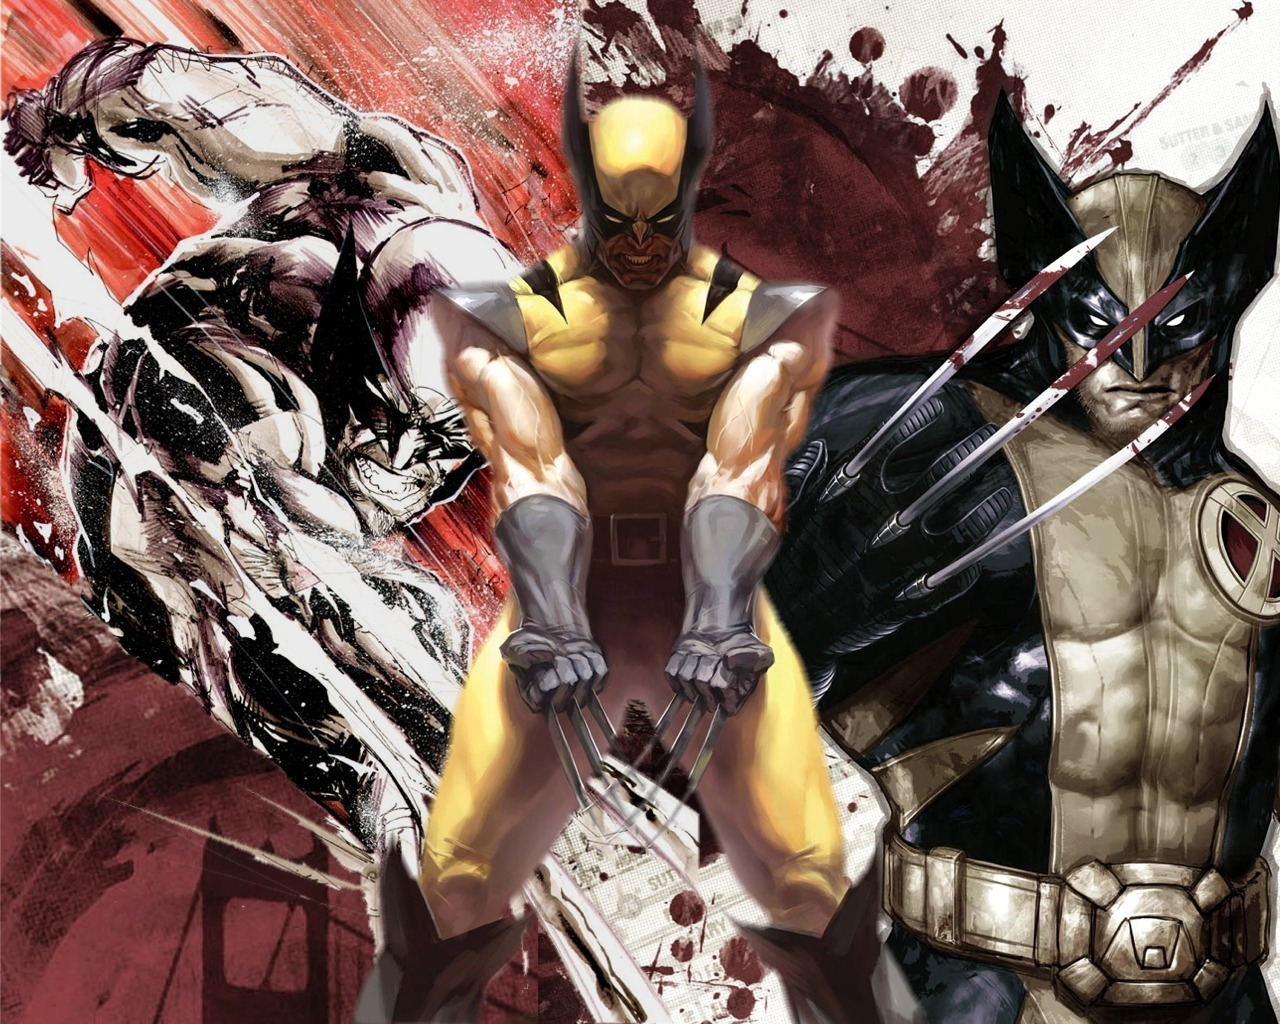 http://4.bp.blogspot.com/-88WBuchAb0I/To8DzRDVT-I/AAAAAAAABZs/l71rdfD9KZY/s1600/Wolverine-x-men-high-resolution-wallpapers.stillmaza.com-1.jpg